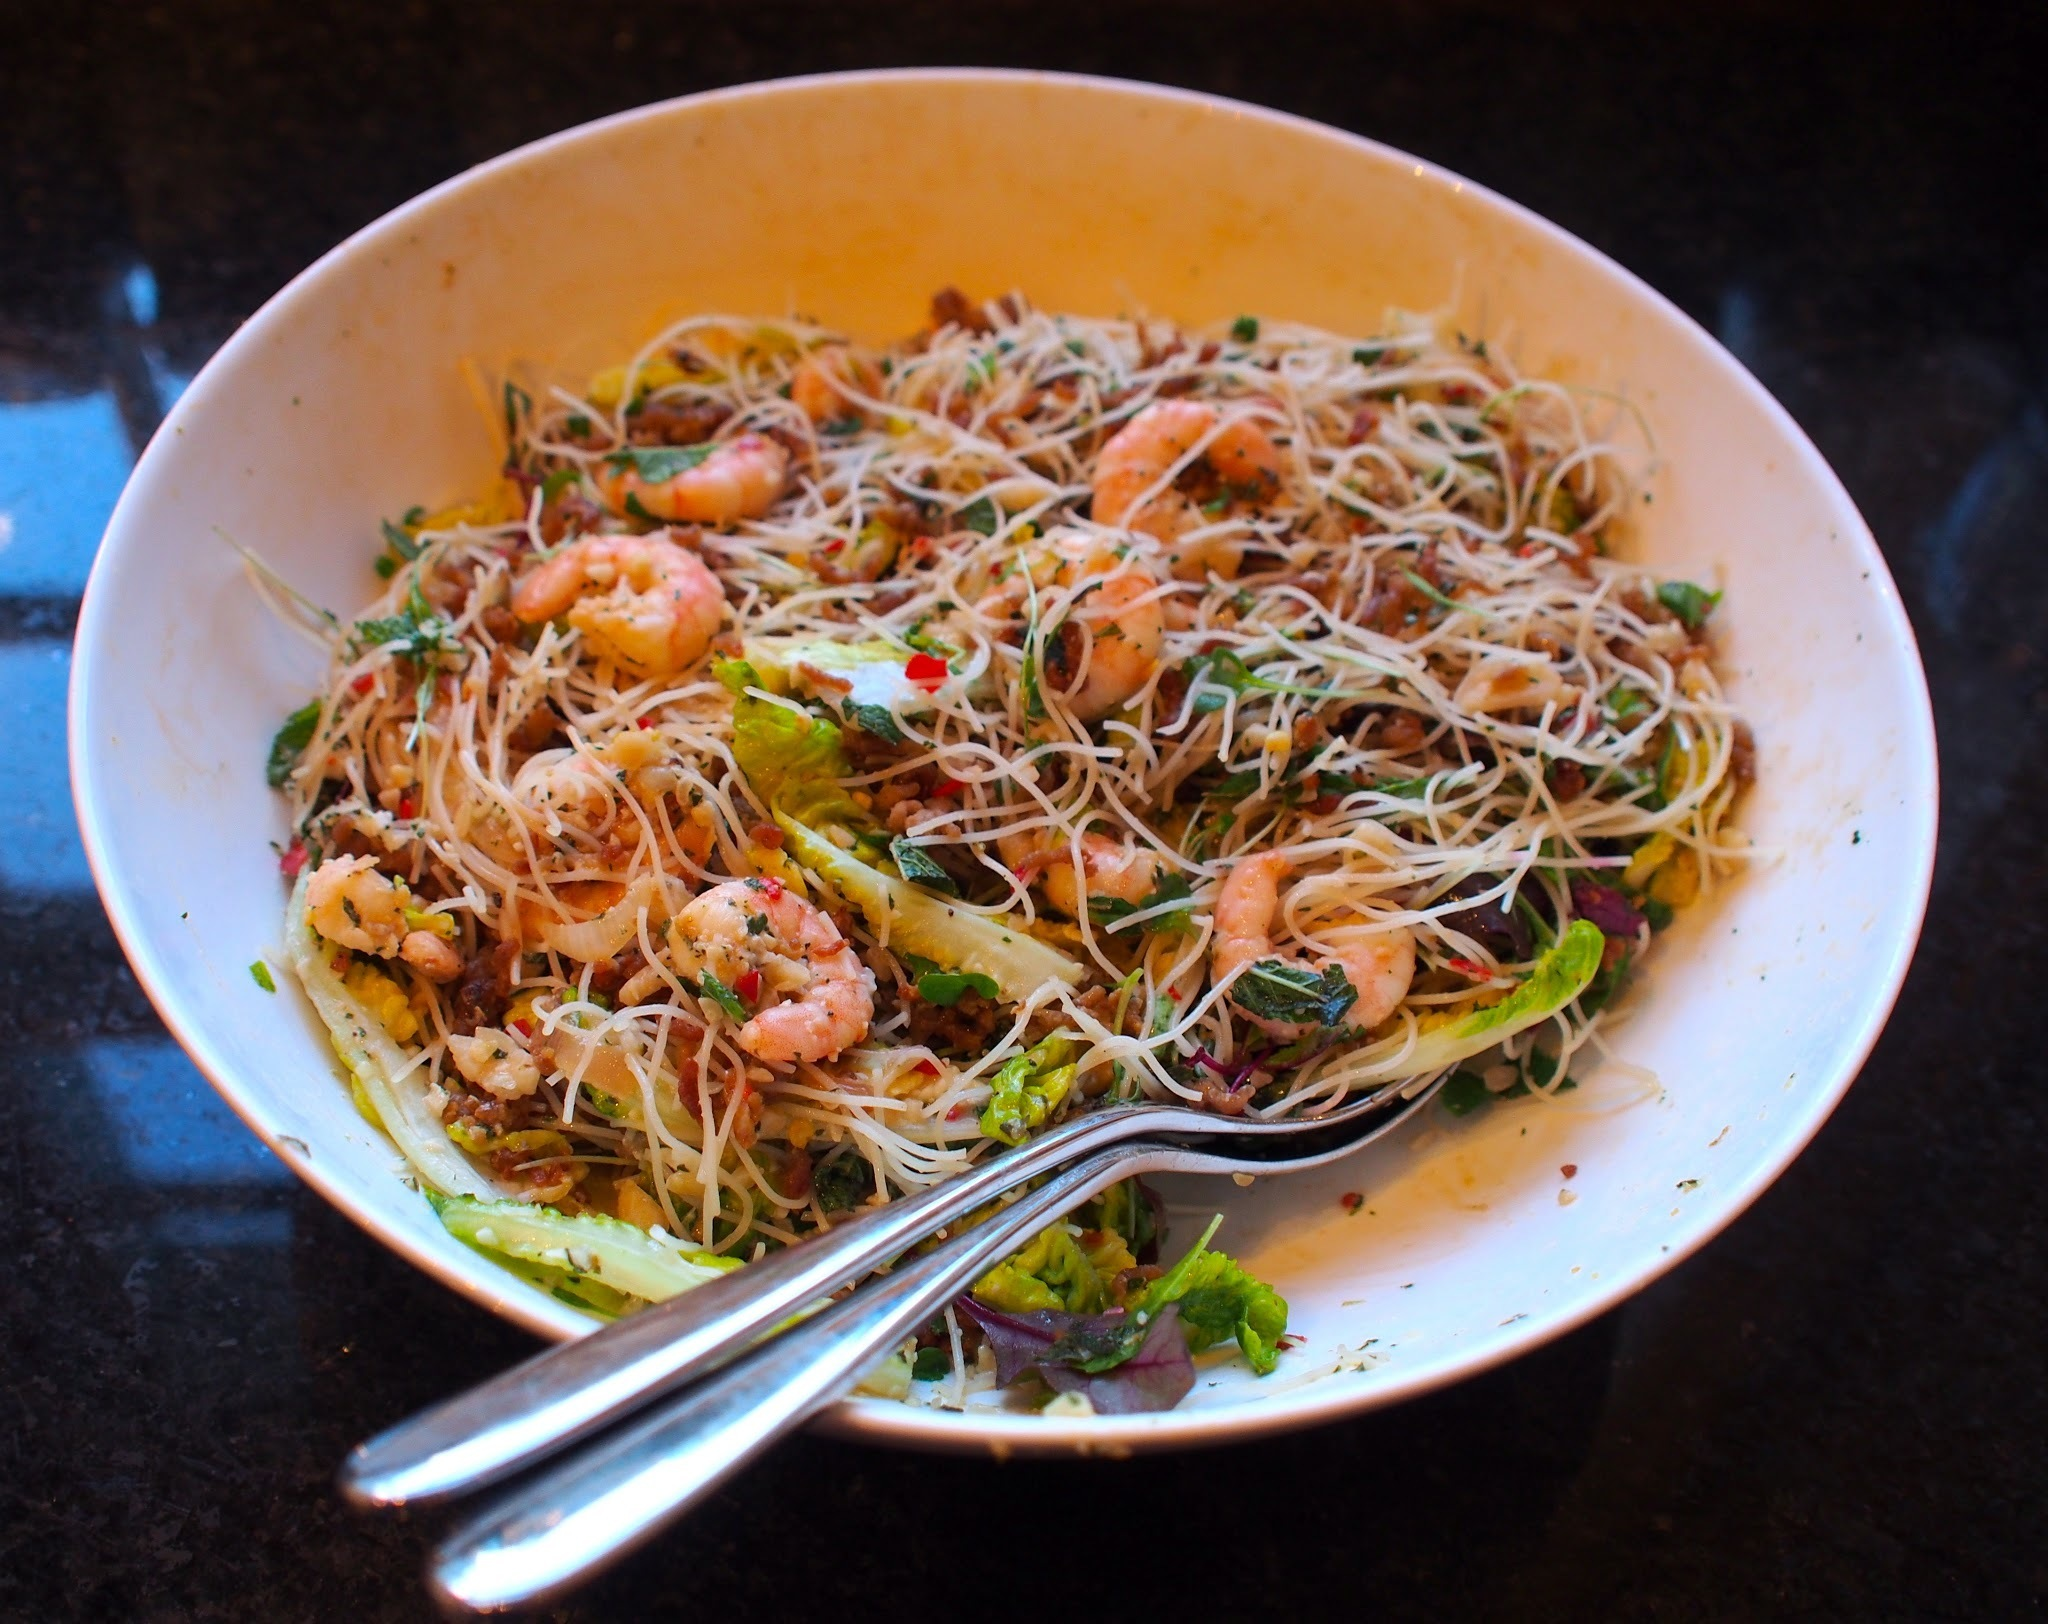 Stir-fried prawns, pork and squid with glass noodles, chilli and mint